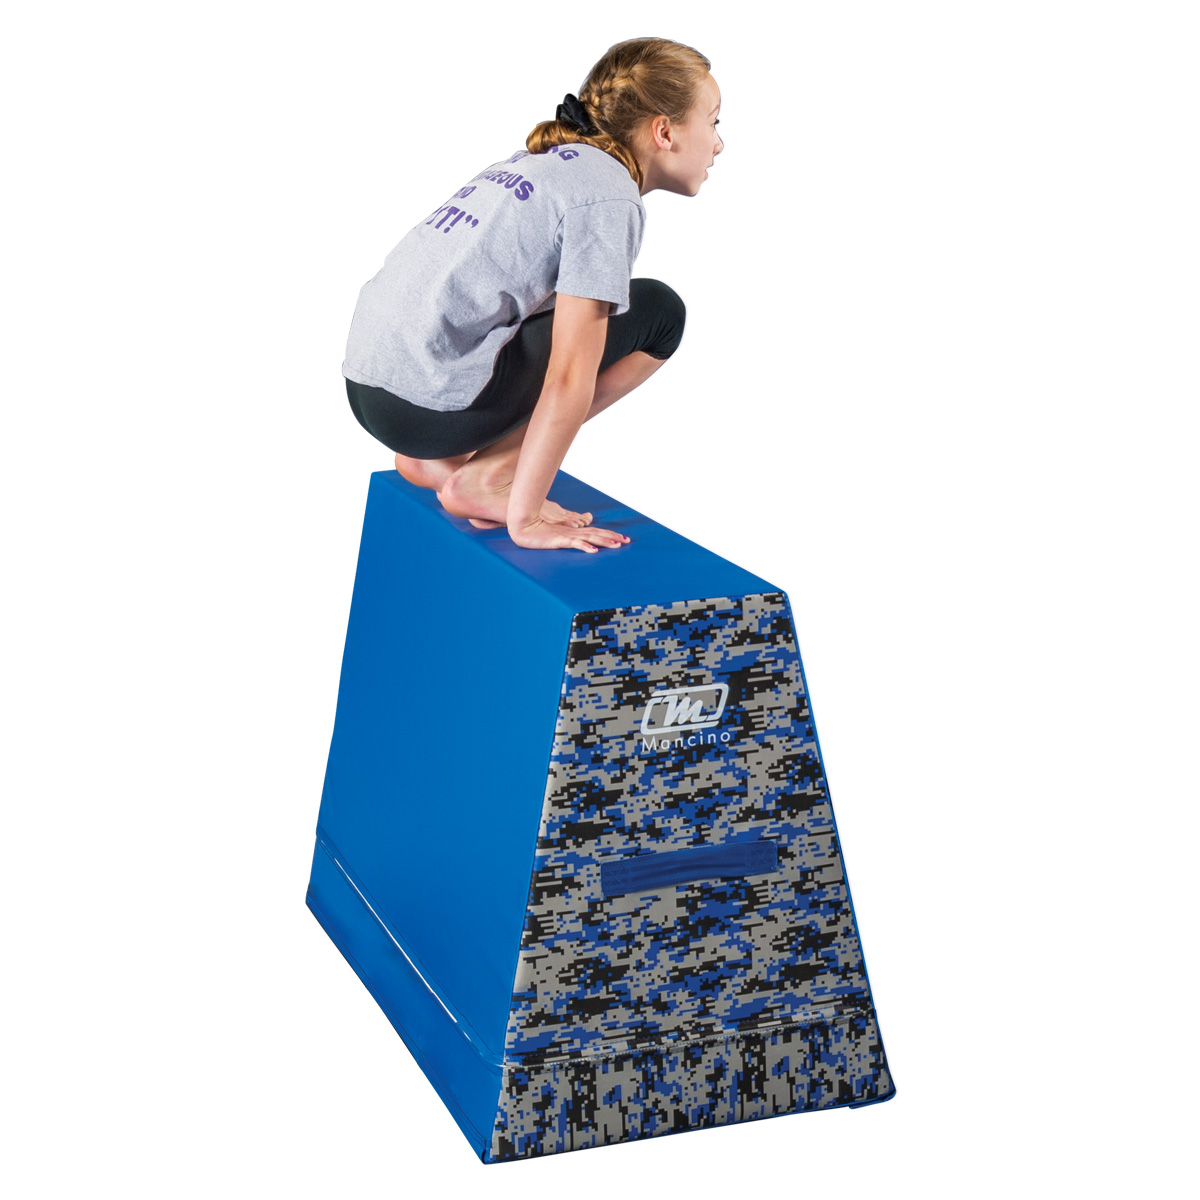 warrior ninja fitness obstacle leaping wall with girl